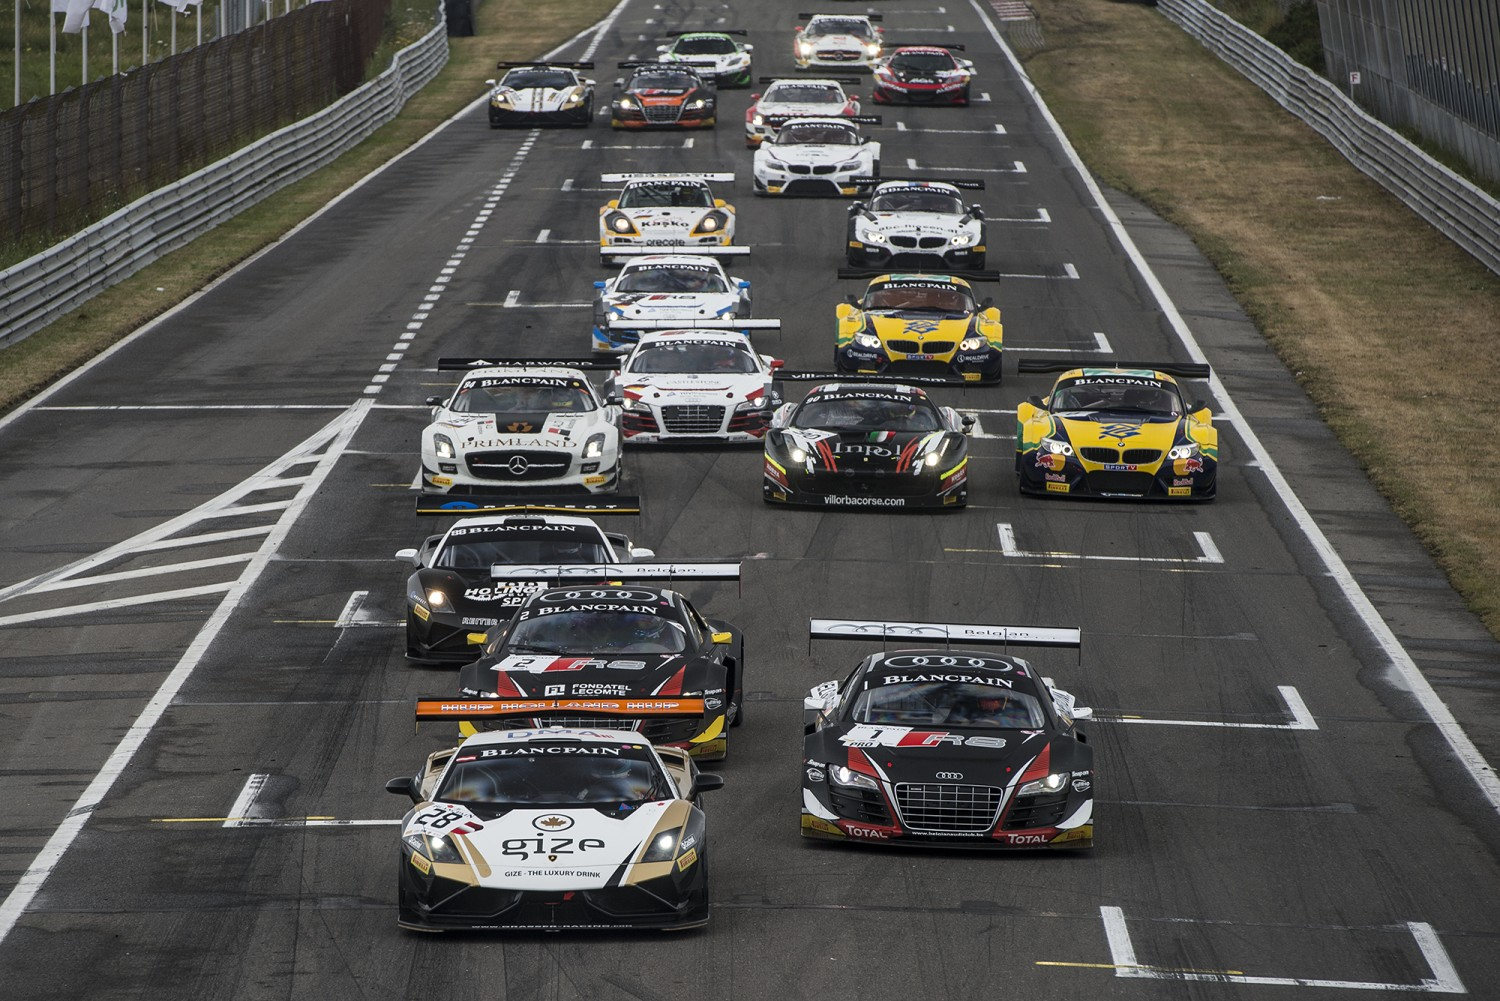 Zandvoort to replace Baku World Challenge as the final round of the Blancpain Sprint Series